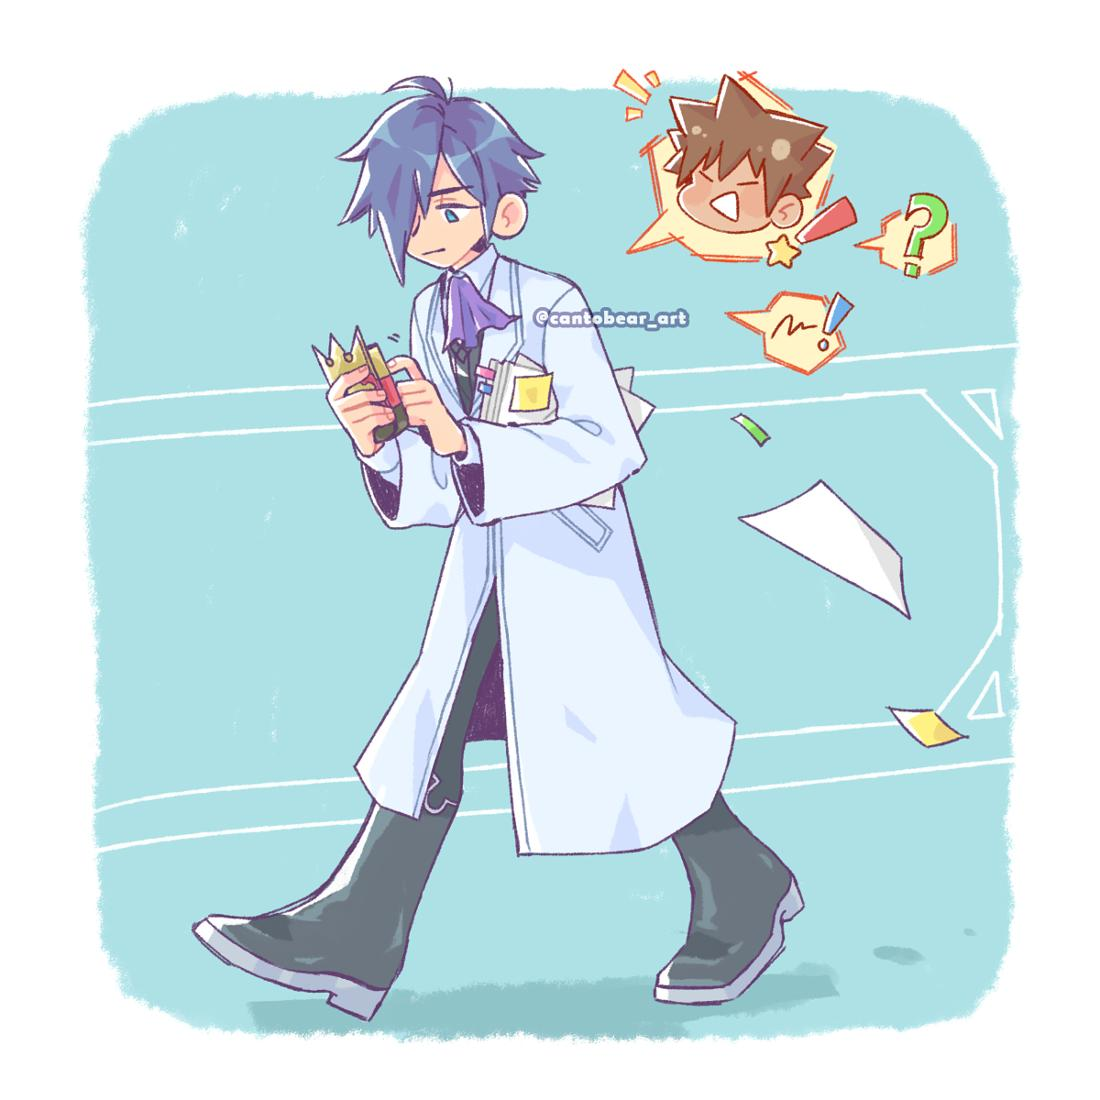 sometimes i imagine what it would be like if the gummiphone had a texting feature so i can keep bothering ienzo abt literally everything bc i miss him #kh3 #kingdomhearts3<br>http://pic.twitter.com/kuW4GZ7cAC